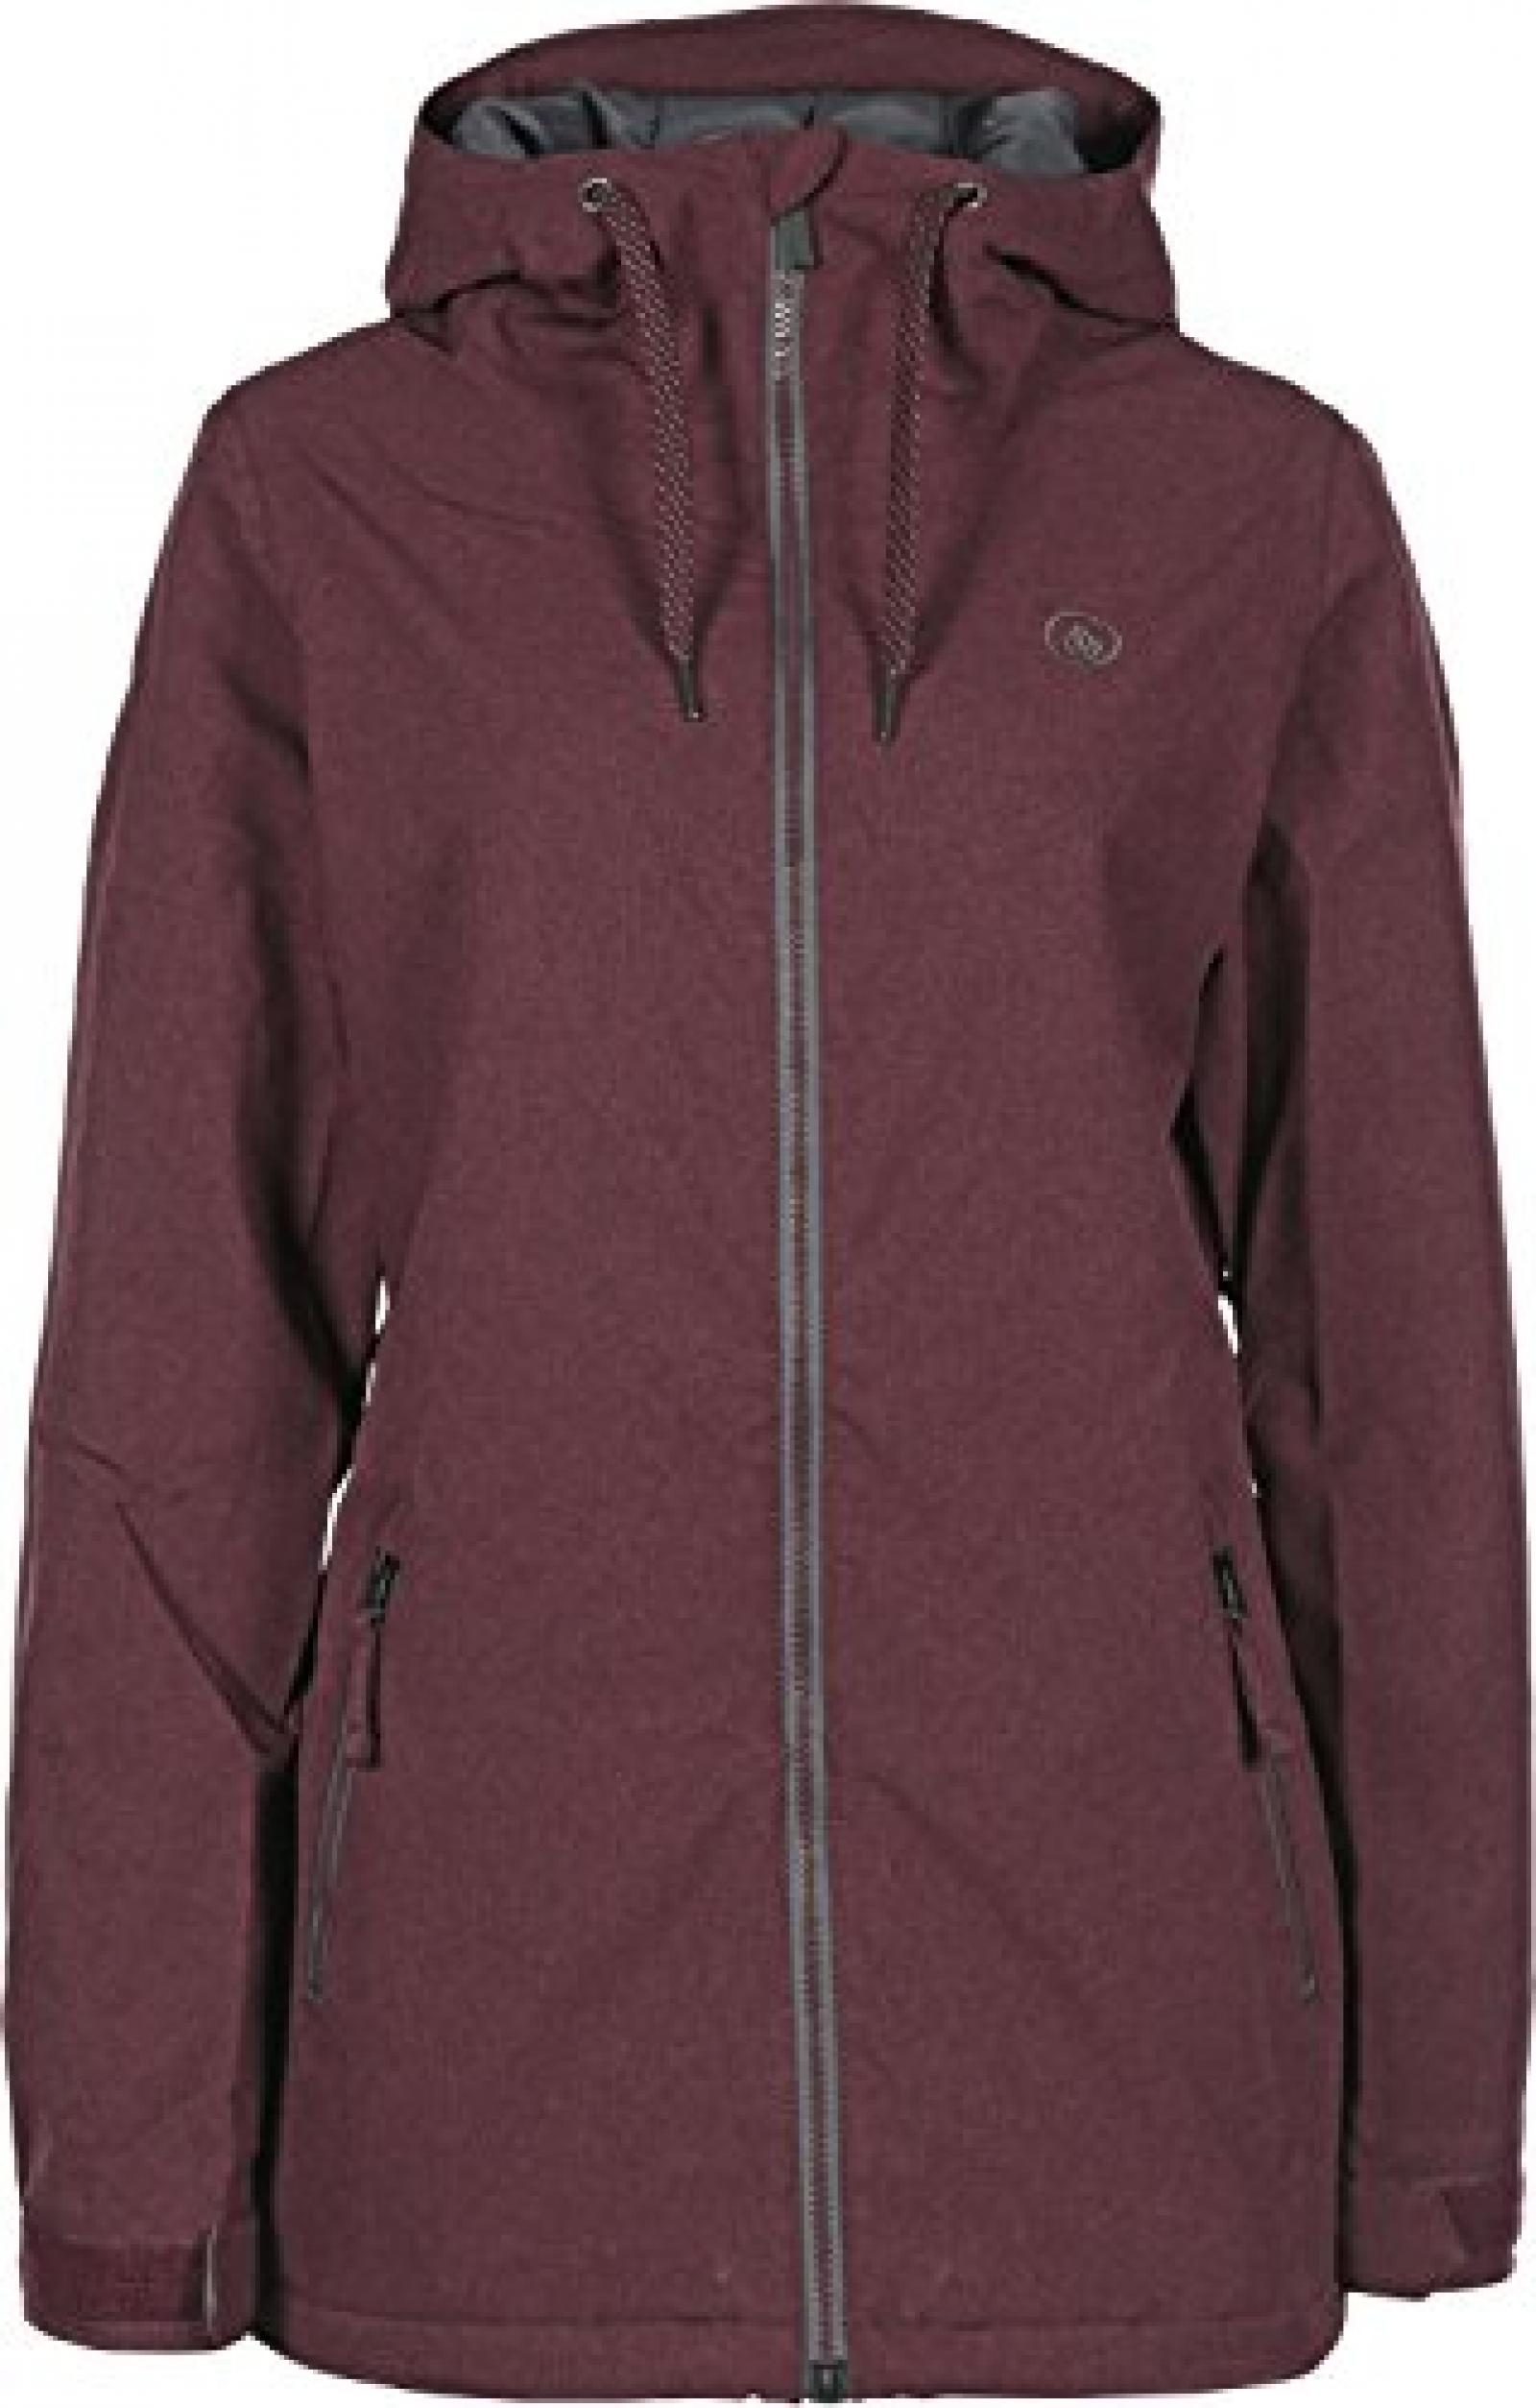 Womens Magnum INS Jacket burgundy